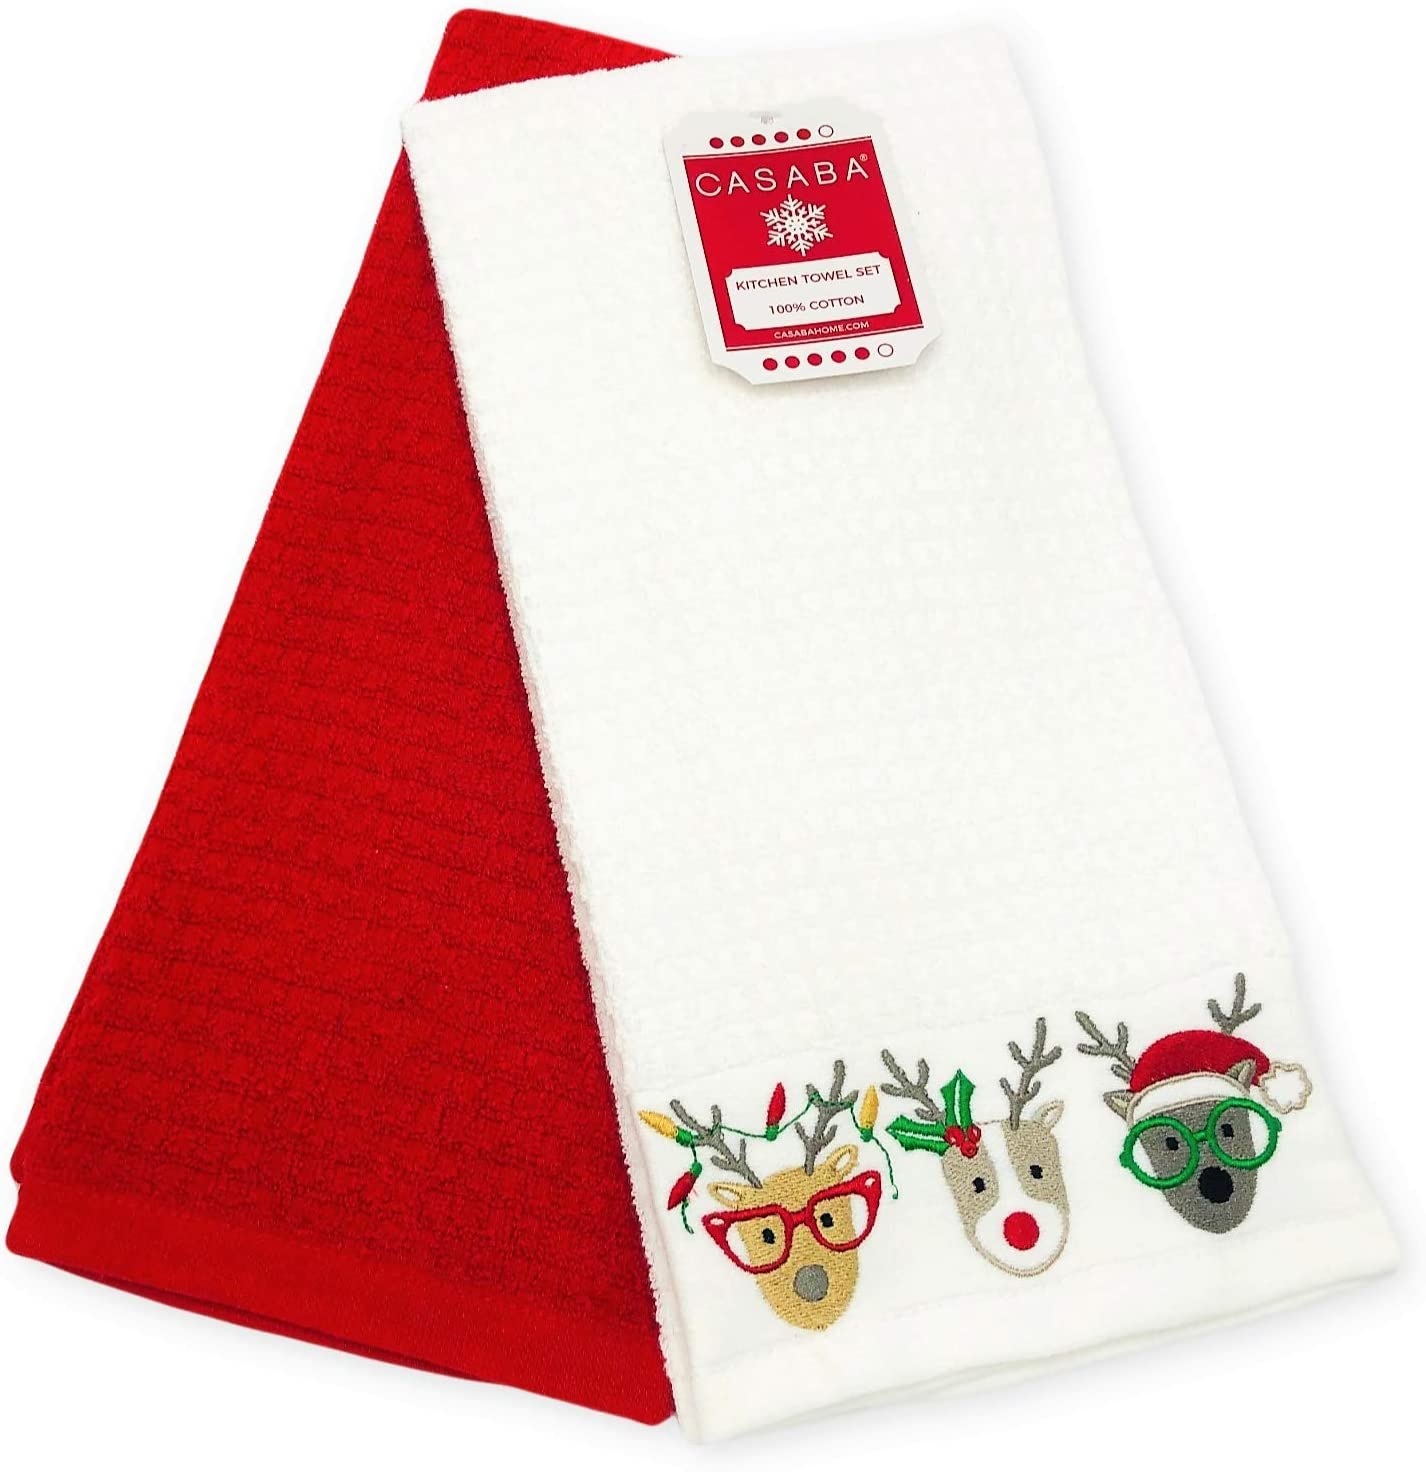 Gnome For Holidays Christmas EMBROIDERED SET OF 2 BATHROOM TOWELS By Laura